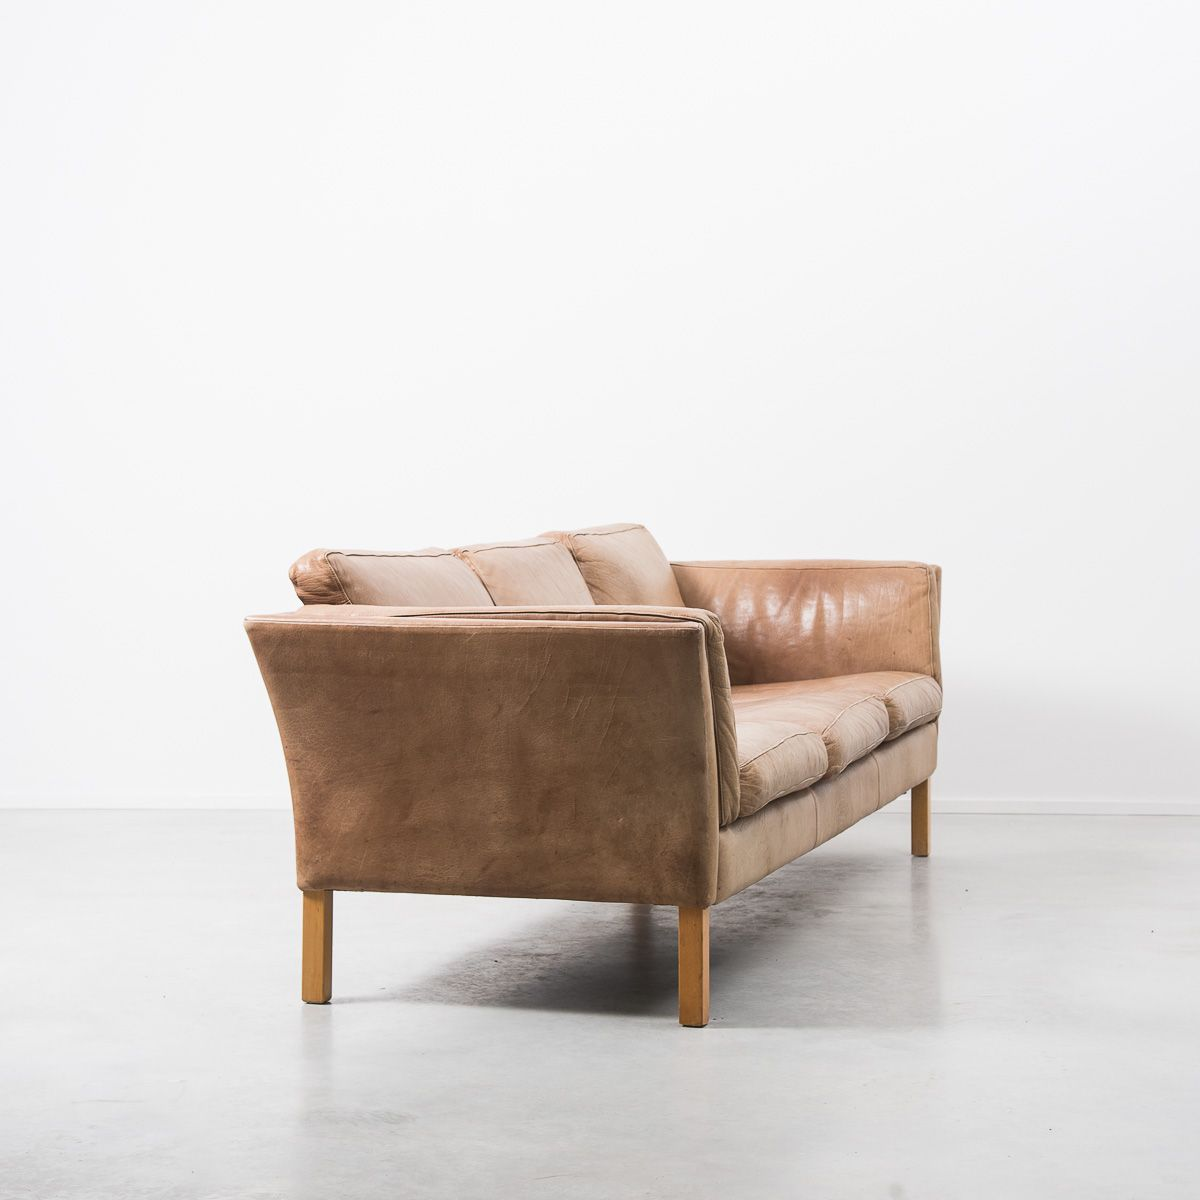 Tan leather sofa by erik j rgensen 1960s for sale at pamono for Tan couches for sale